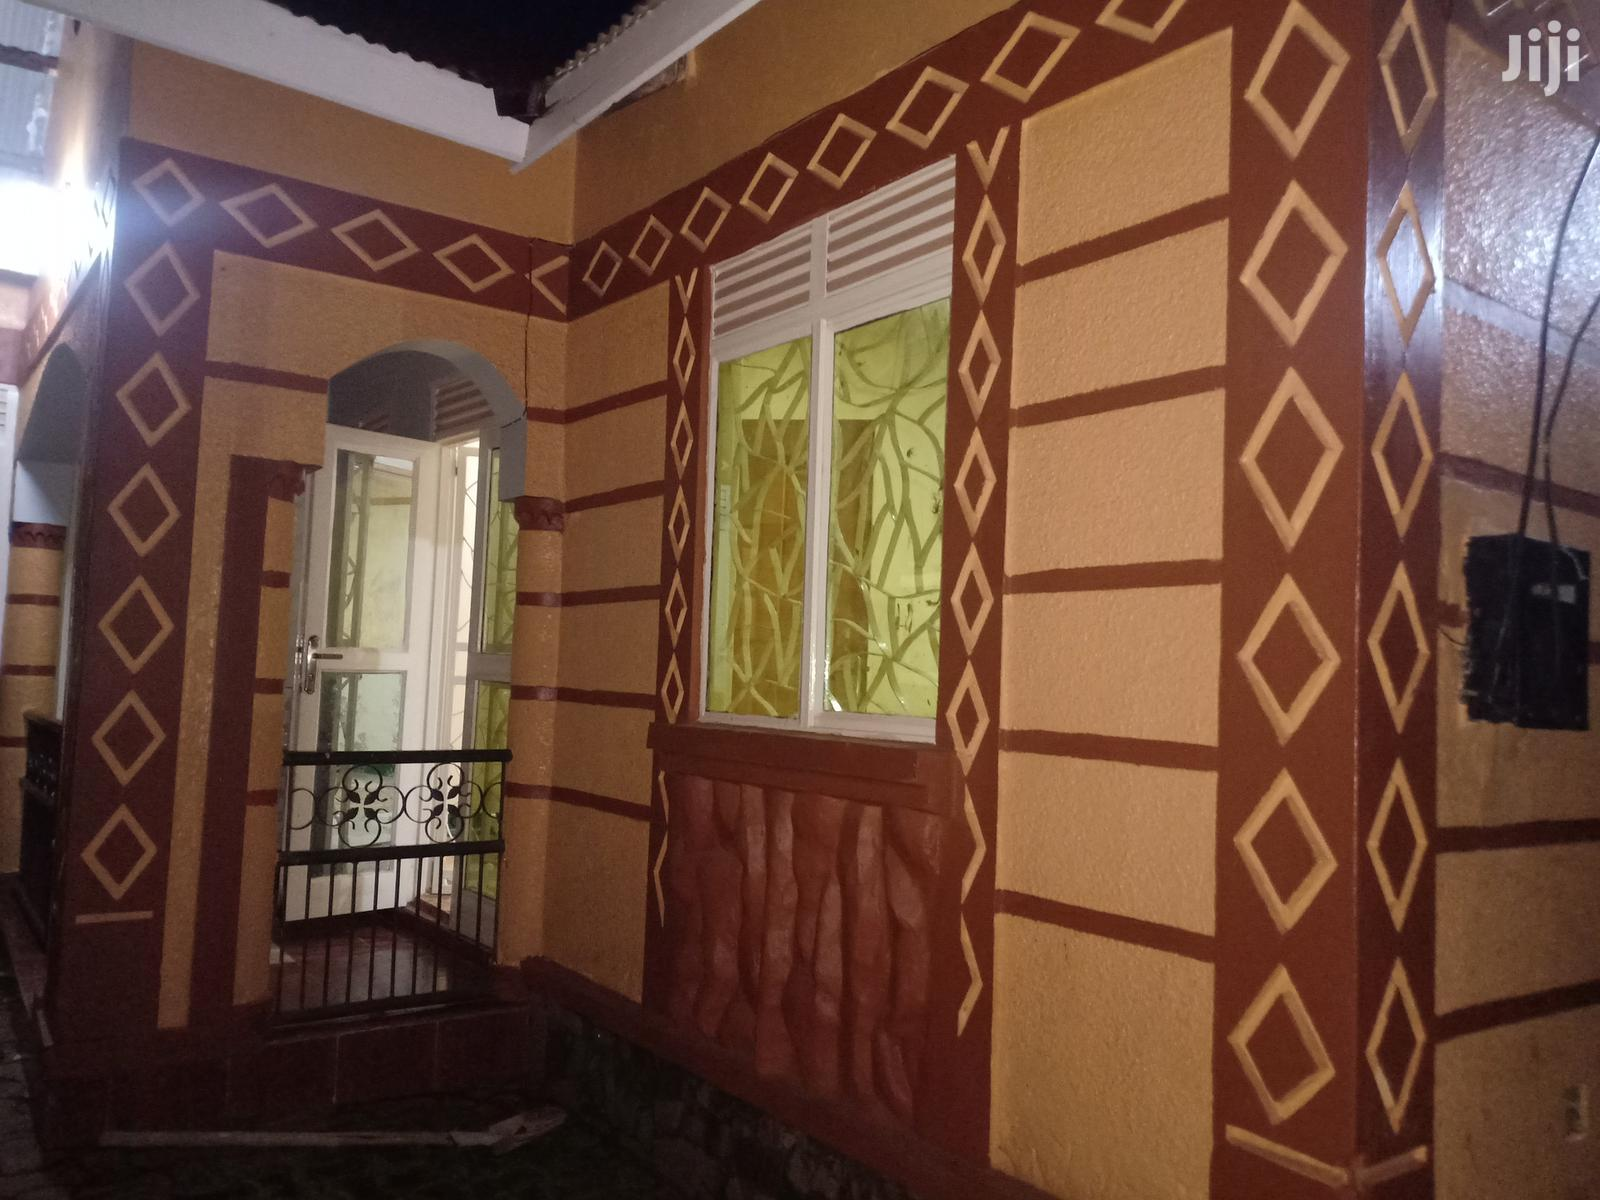 Kireka New Single Room For Rent | Houses & Apartments For Rent for sale in Kampala, Central Region, Uganda